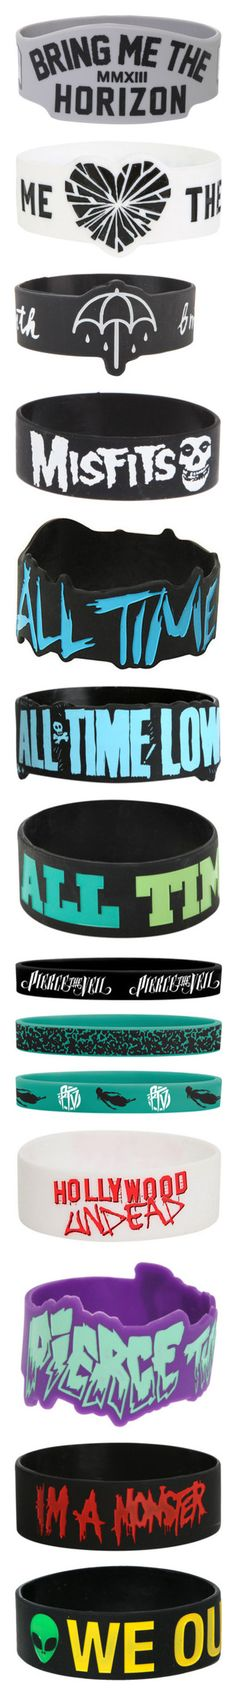 """BAND BRACLETS"" by chemicalfallout249 ❤ liked on Polyvore featuring jewelry, bracelets, rubber bracelets, accessories, bands, rubber bangles, rubber jewelry, hot topic jewelry, grey jewelry and hot topic"